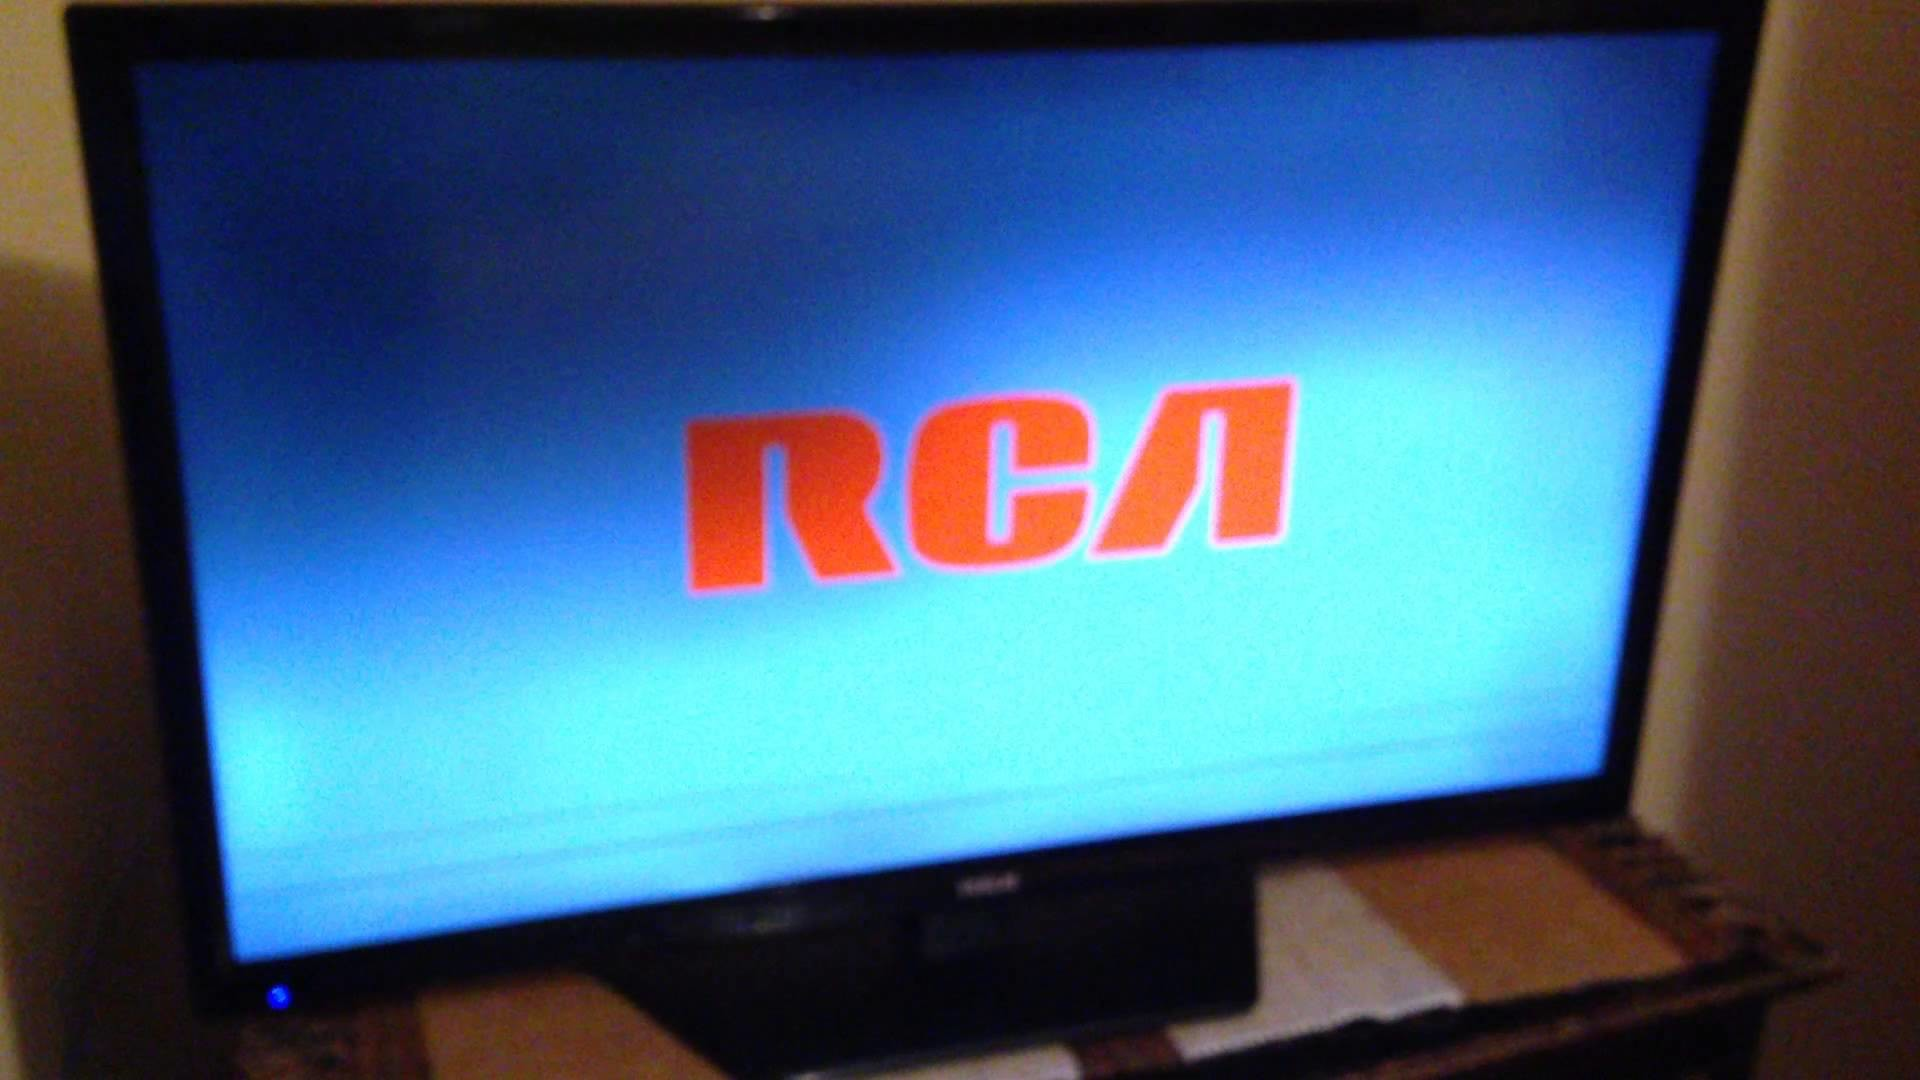 Could someone help , my RCA tv is broken and I don't have a fix